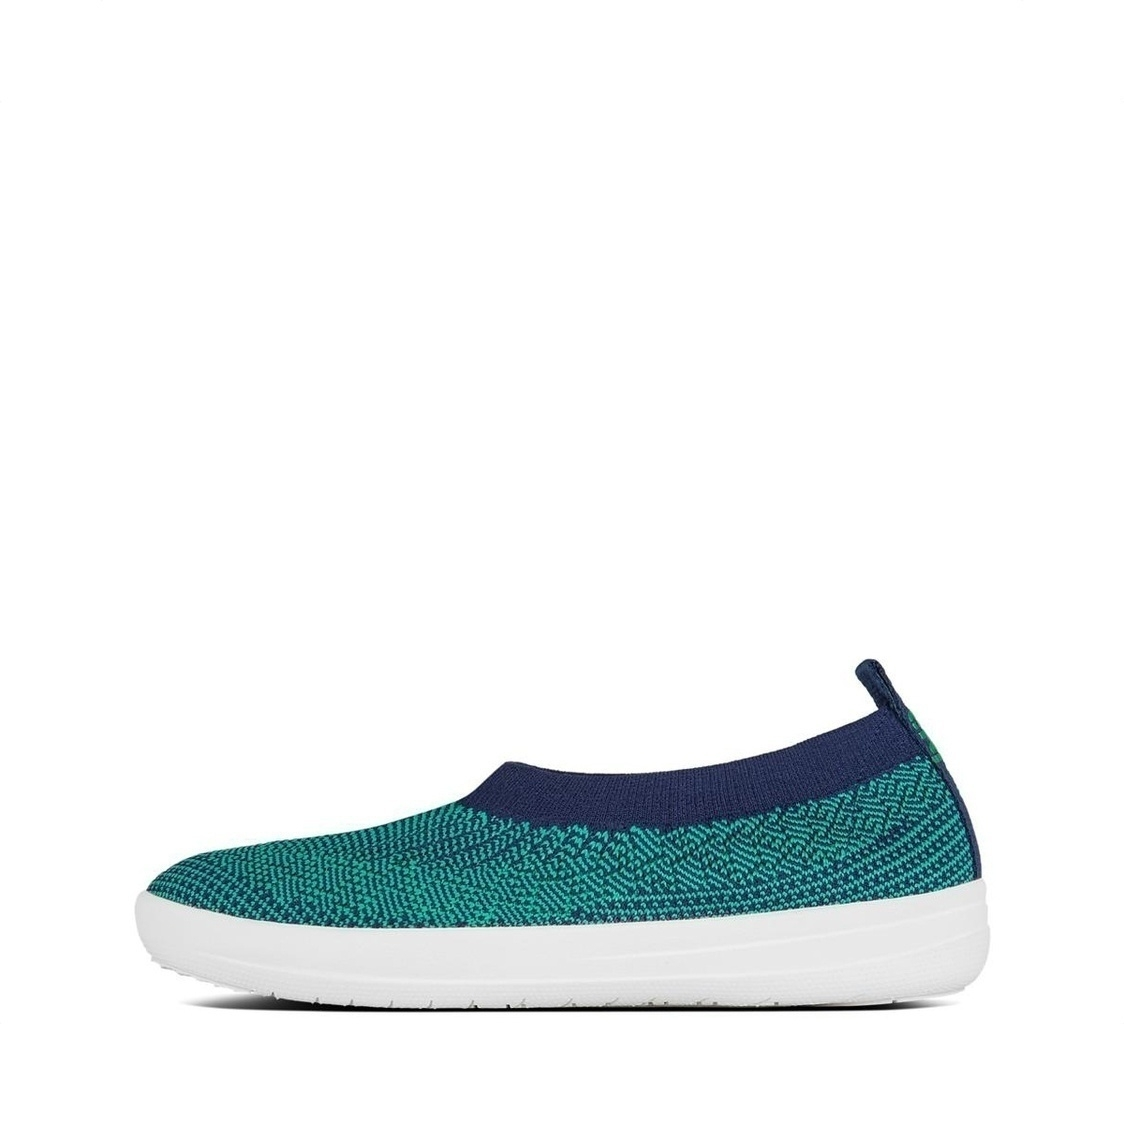 berknit Slip-On Ballerinas